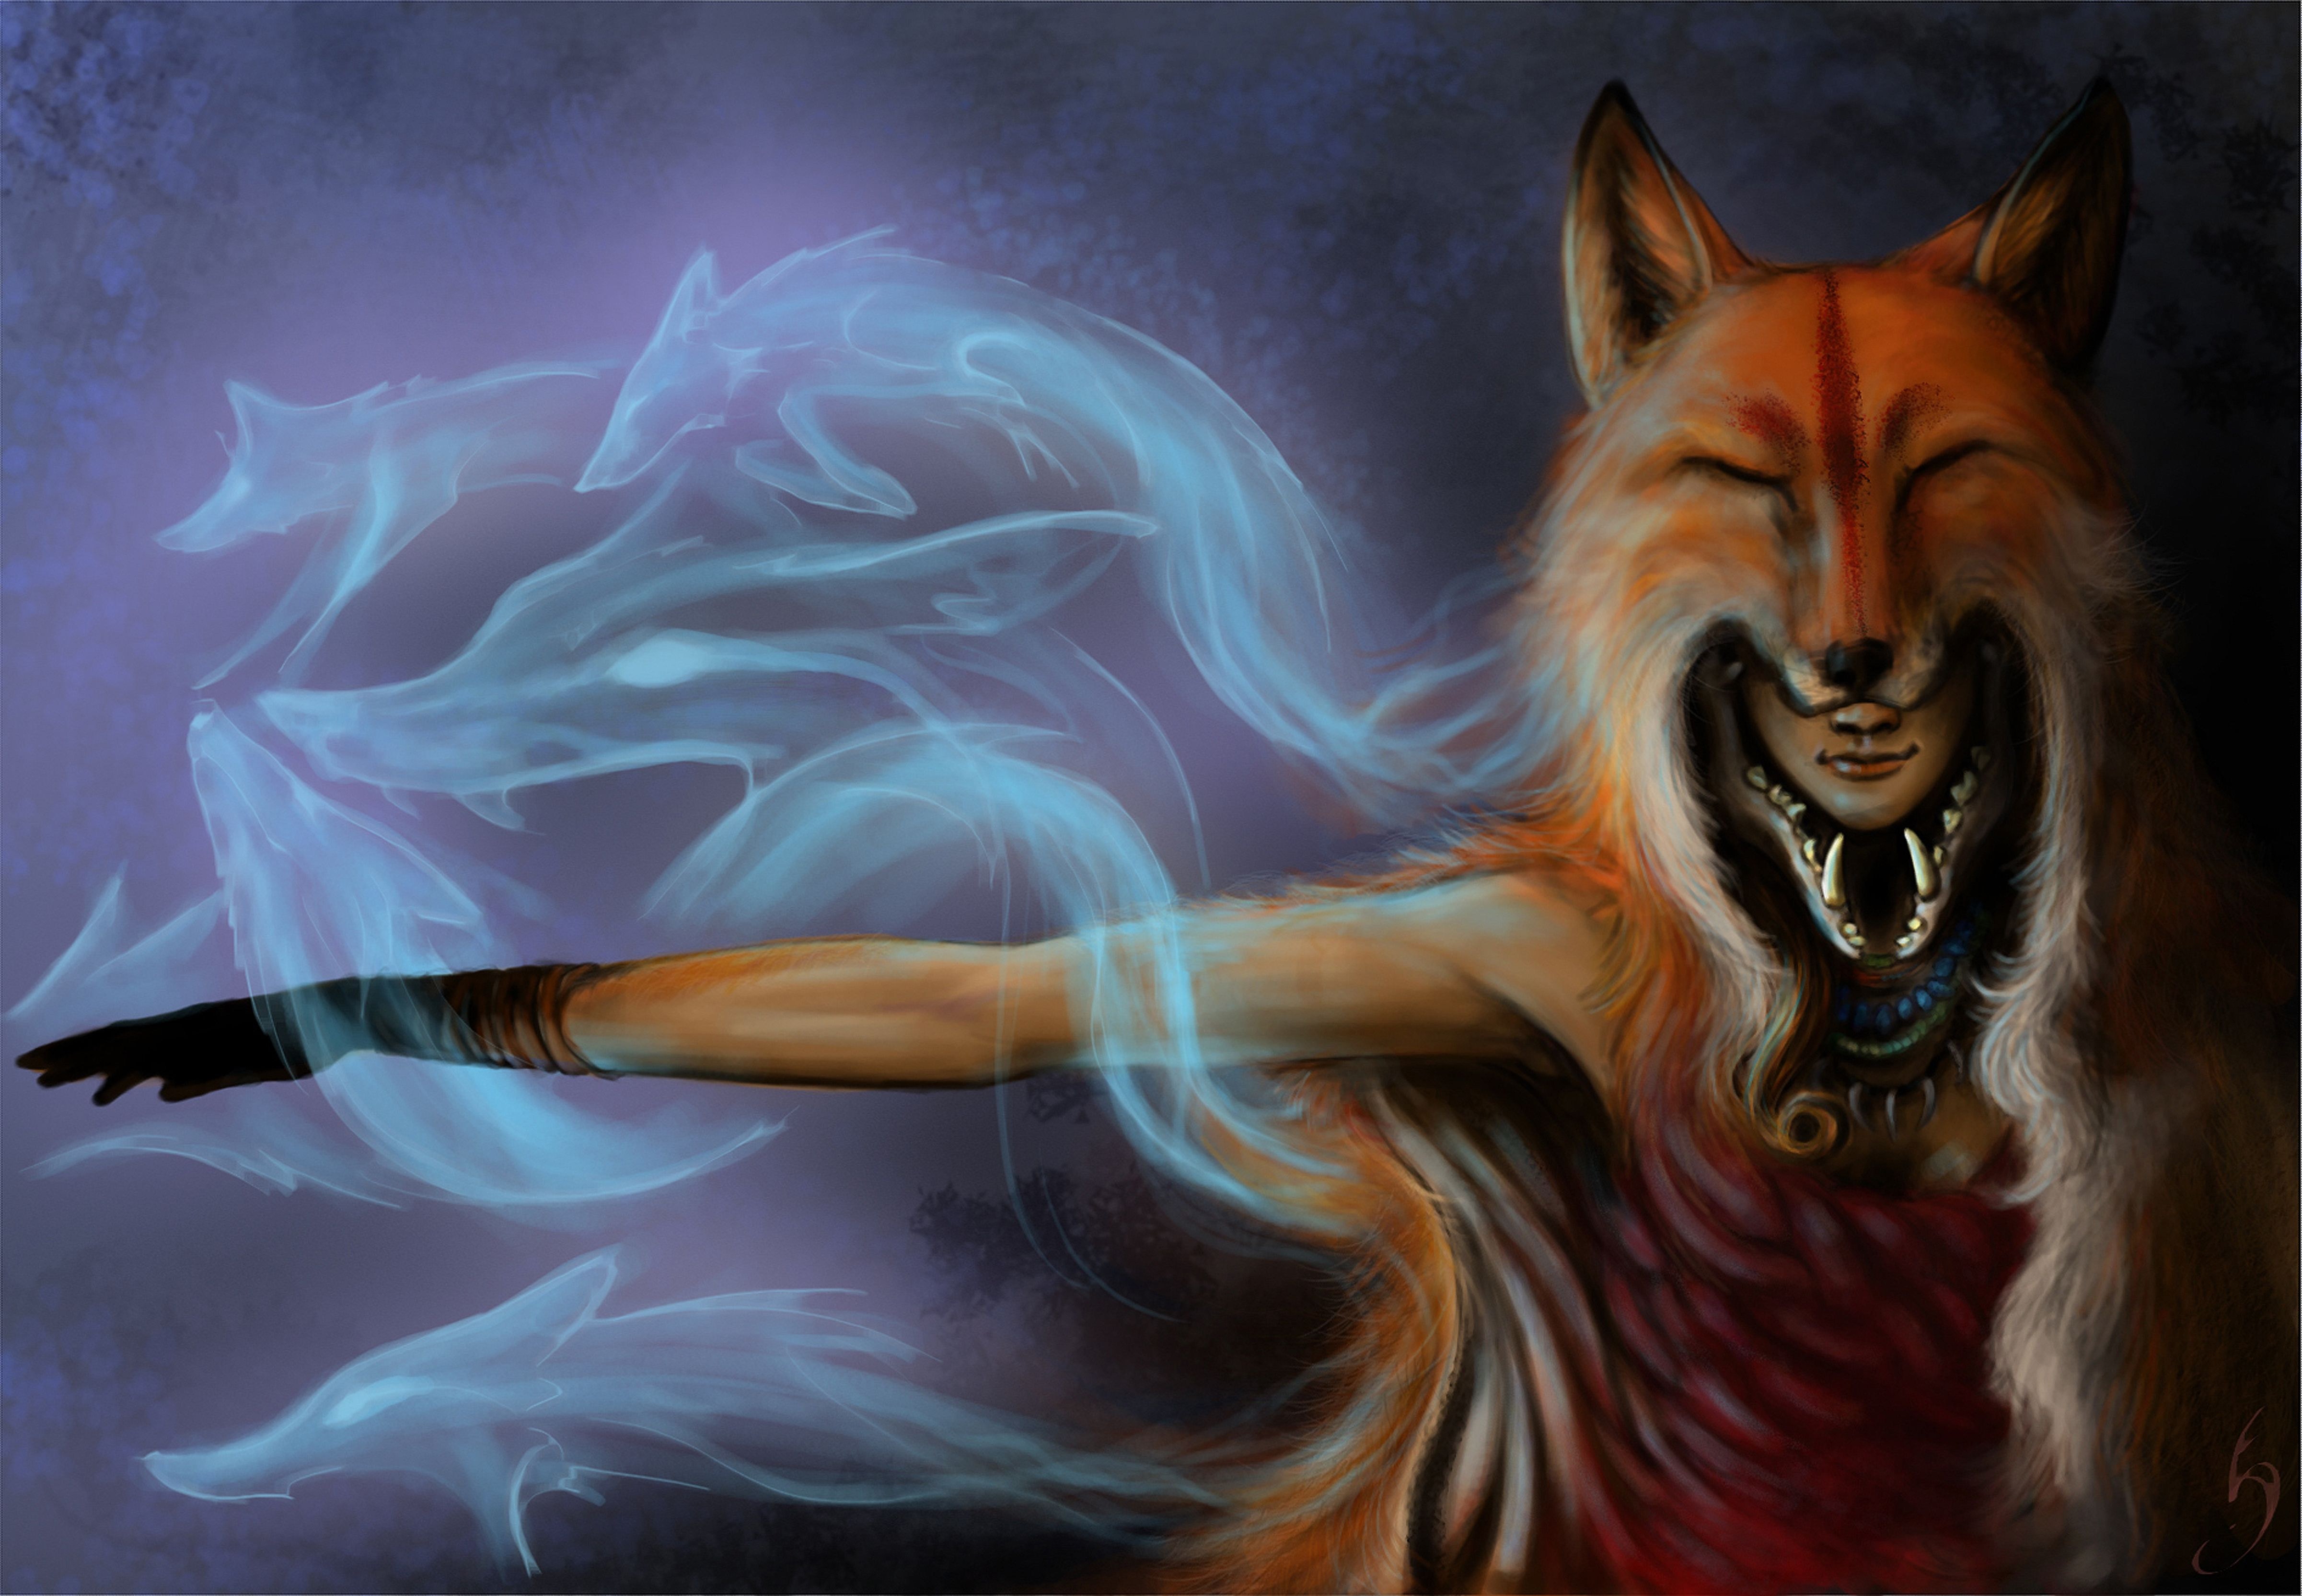 Images Foxes Sorcery Fantasy 4803x3330